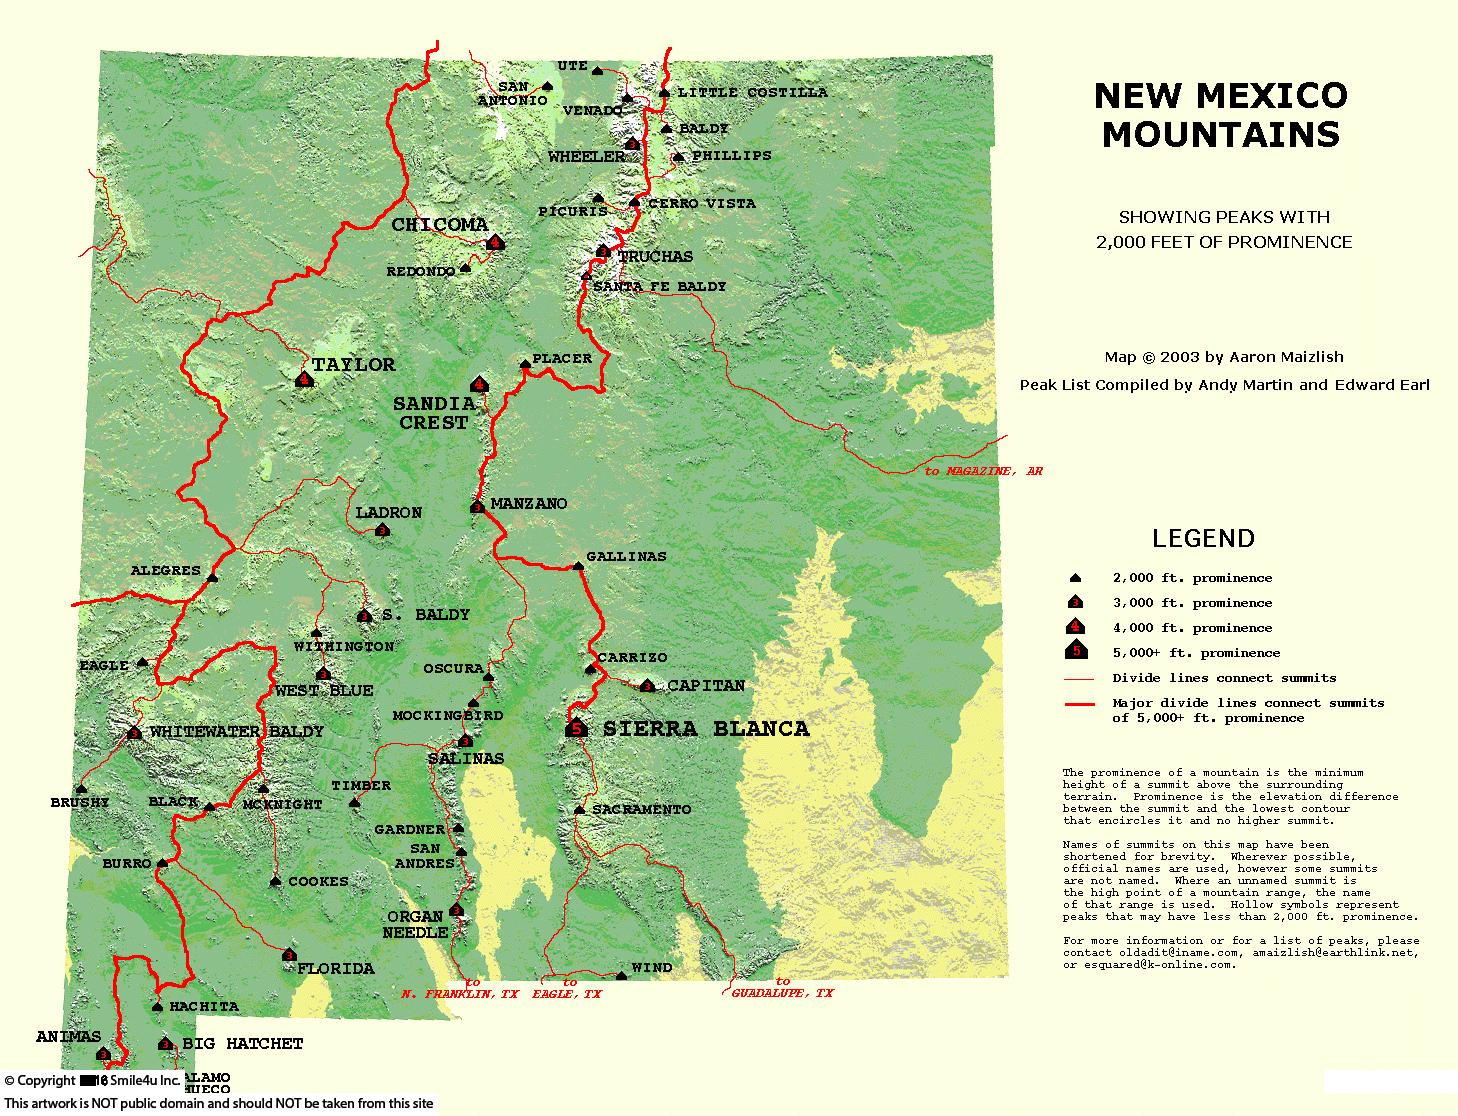 902481_watermarked_newmexicosummits.png